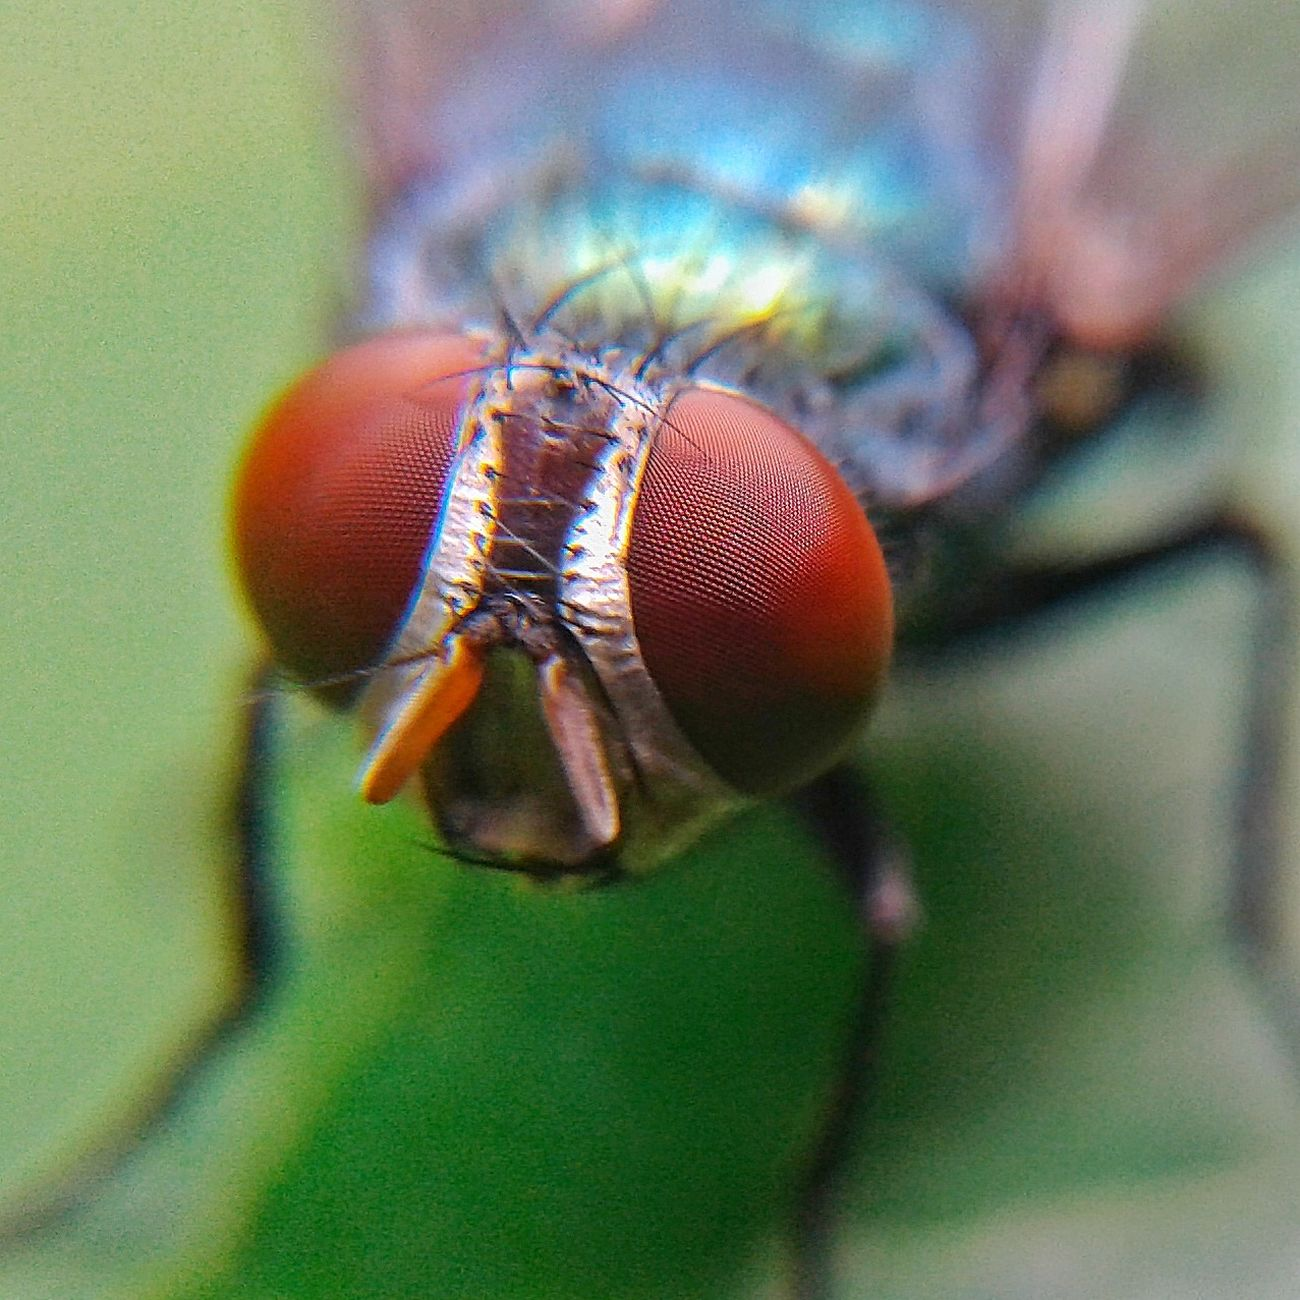 Fly Macro Macro Photography Macroinsects Macroinsect Macro_bugs Macro_collection Macroclique Macro_captures Macroporn Macroshot Macrophotography